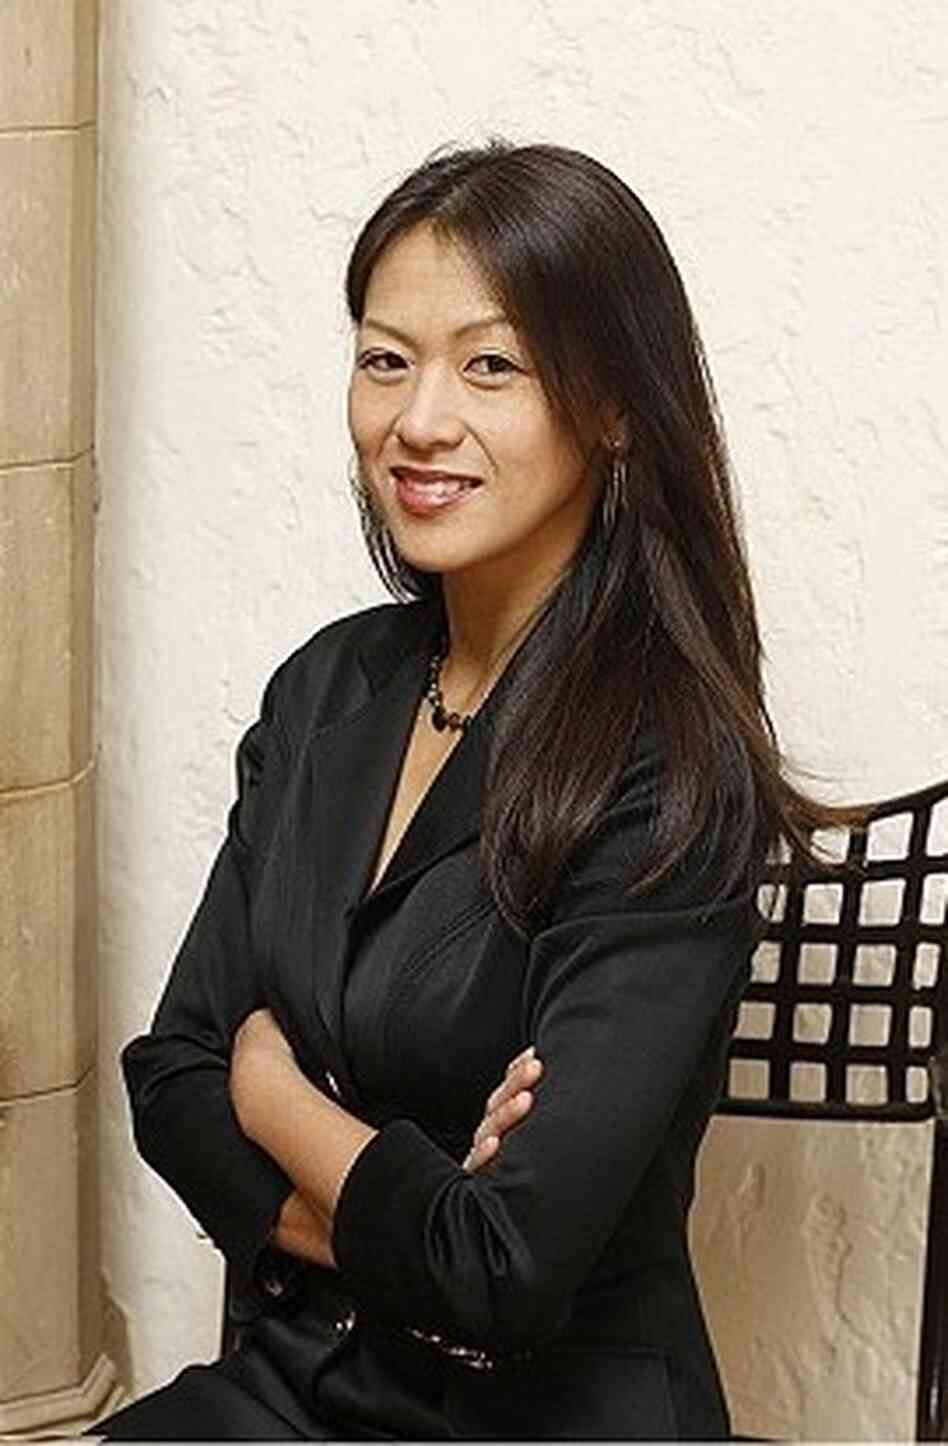 Amy Chua is the author of two books on globalization and democracy and